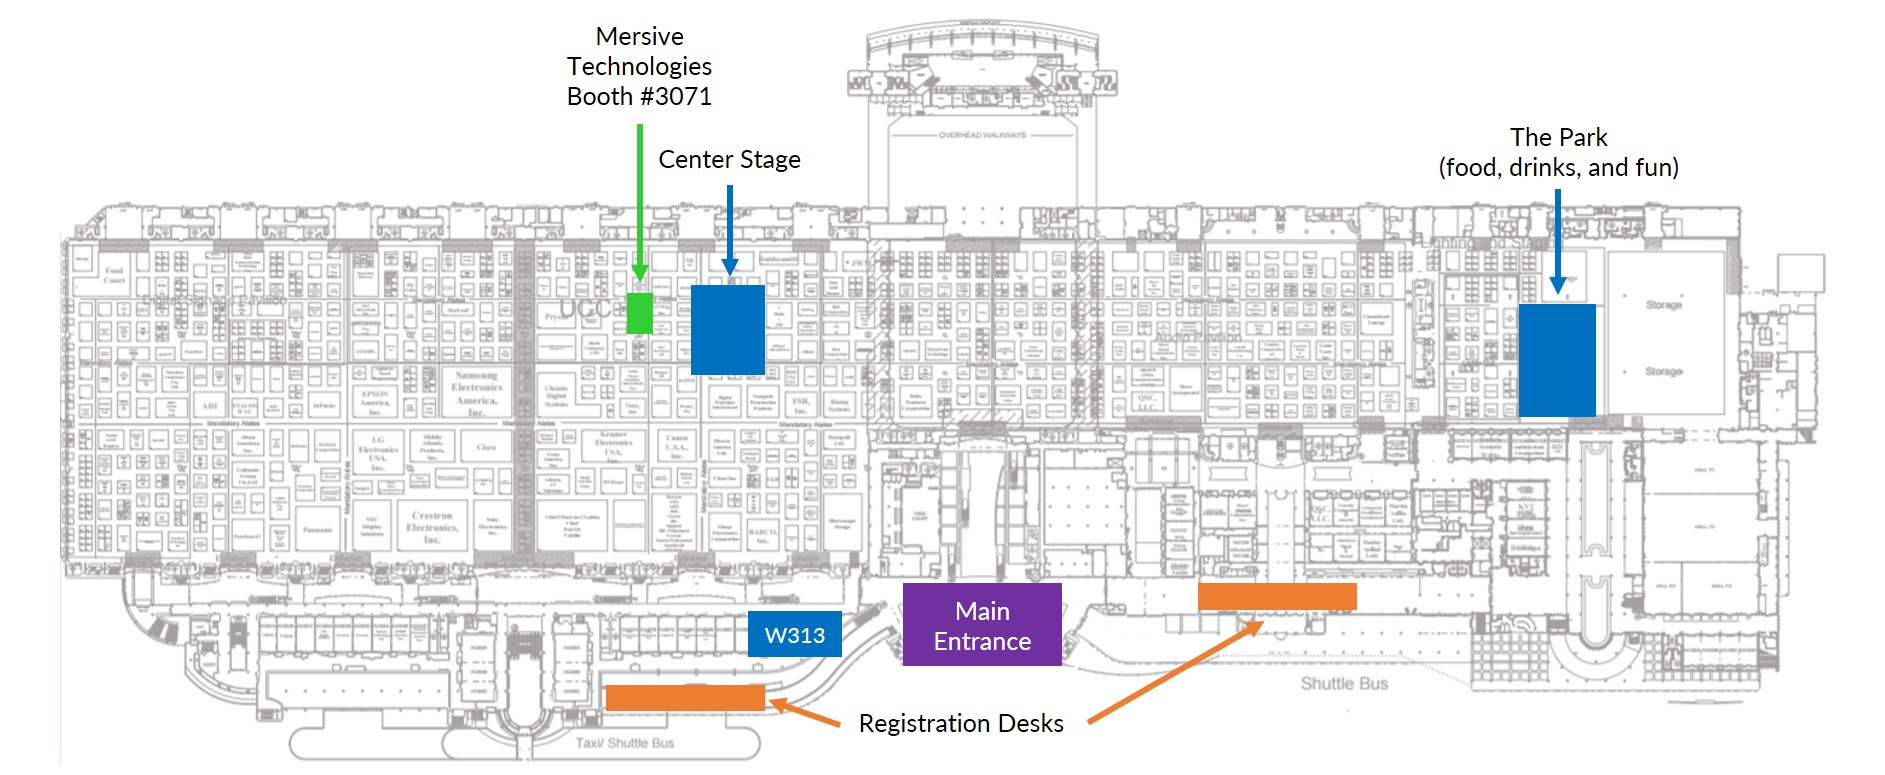 InfoComm2017 Floorplan with Mersive and Center Stage